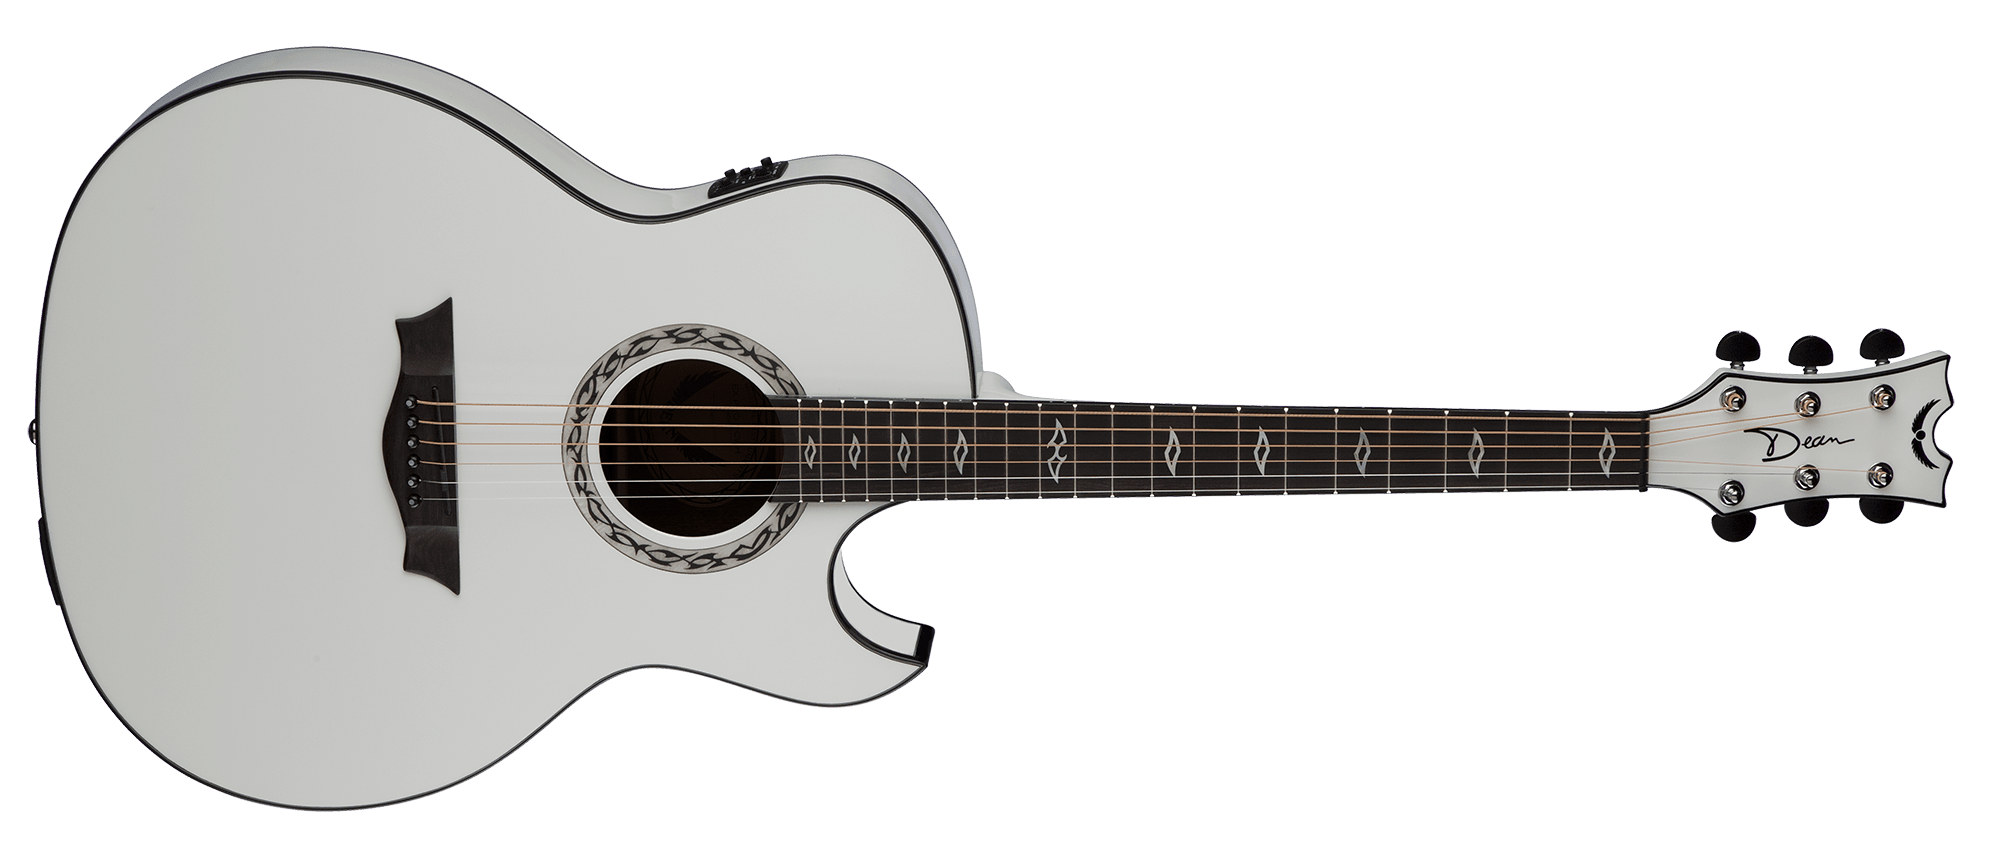 Guitar black and white png. Exhibition ultra a e